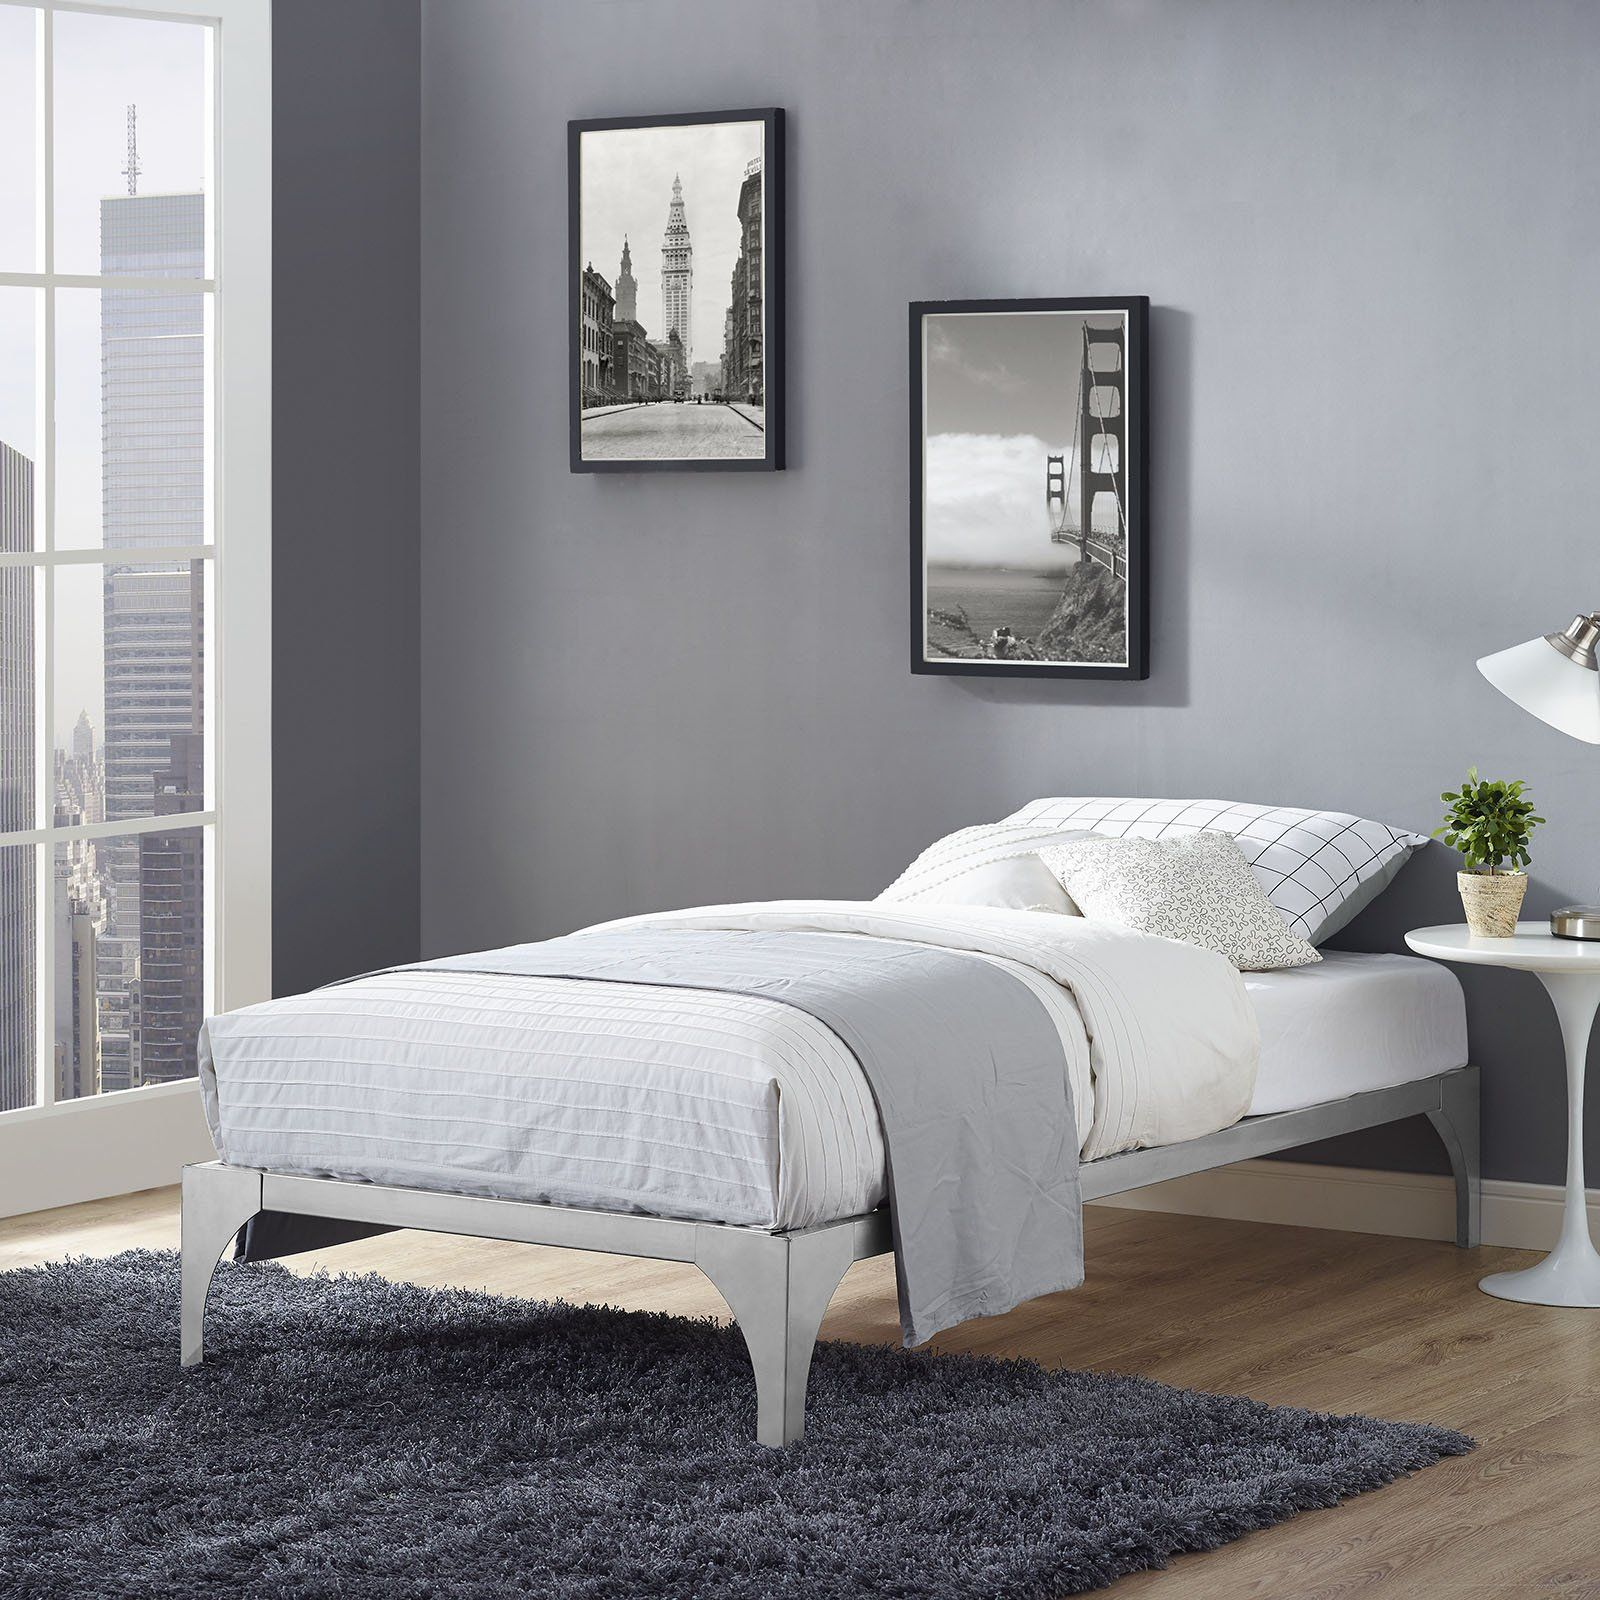 Modway Furniture Modern Ollie Twin Bed Frame Mod 5430 Modern